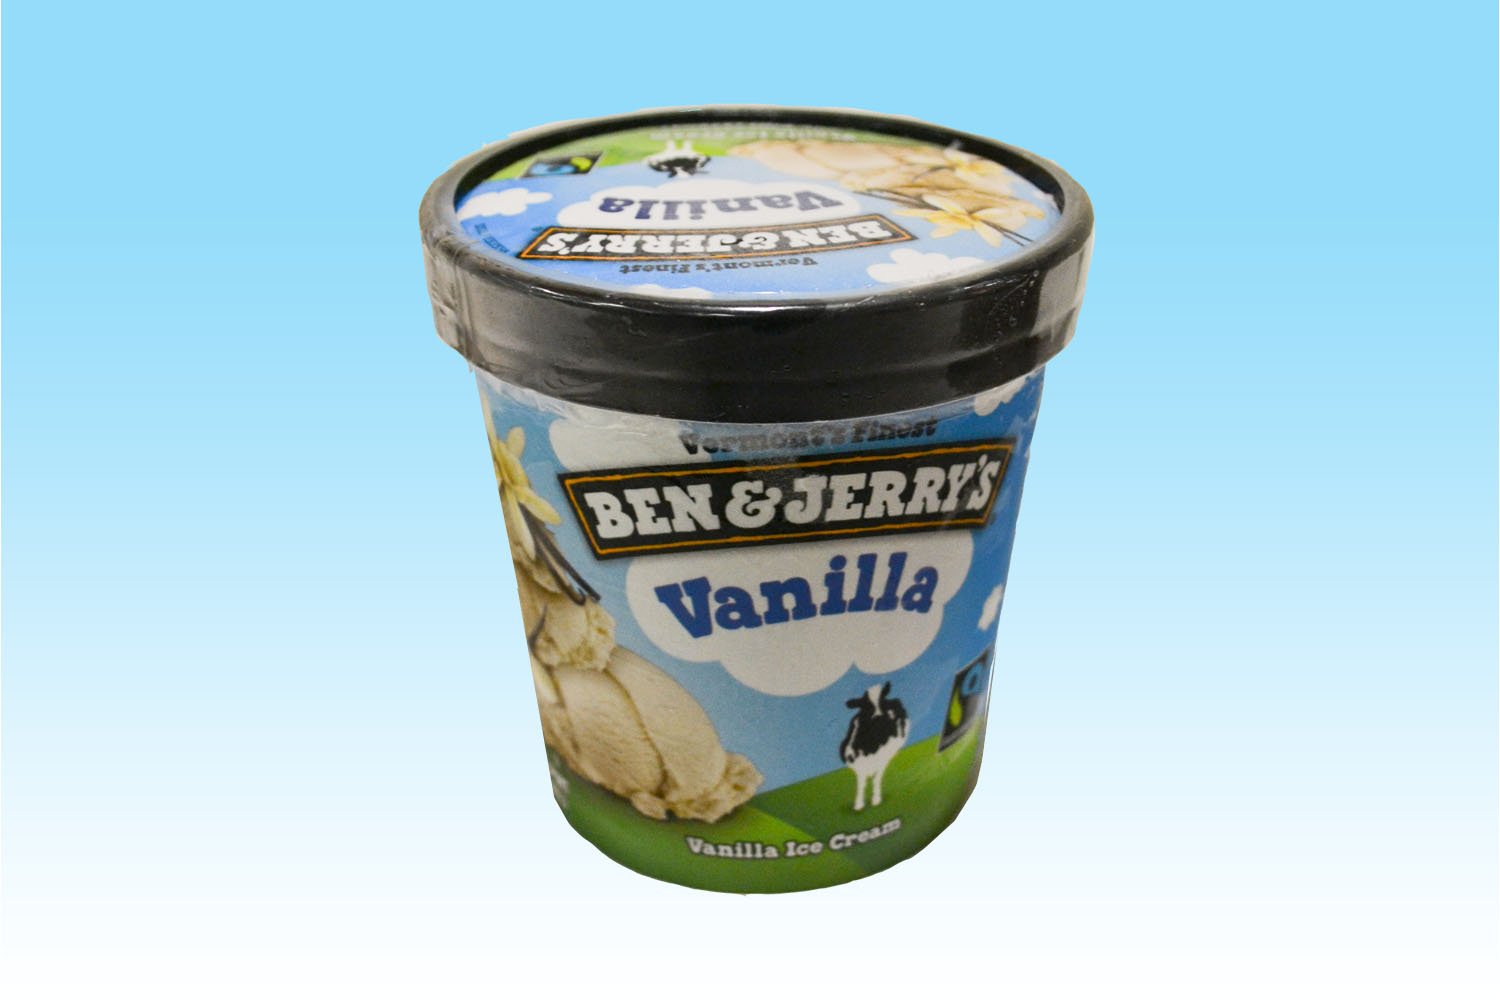 Ben & Jerry's Vanilla Ice Cream